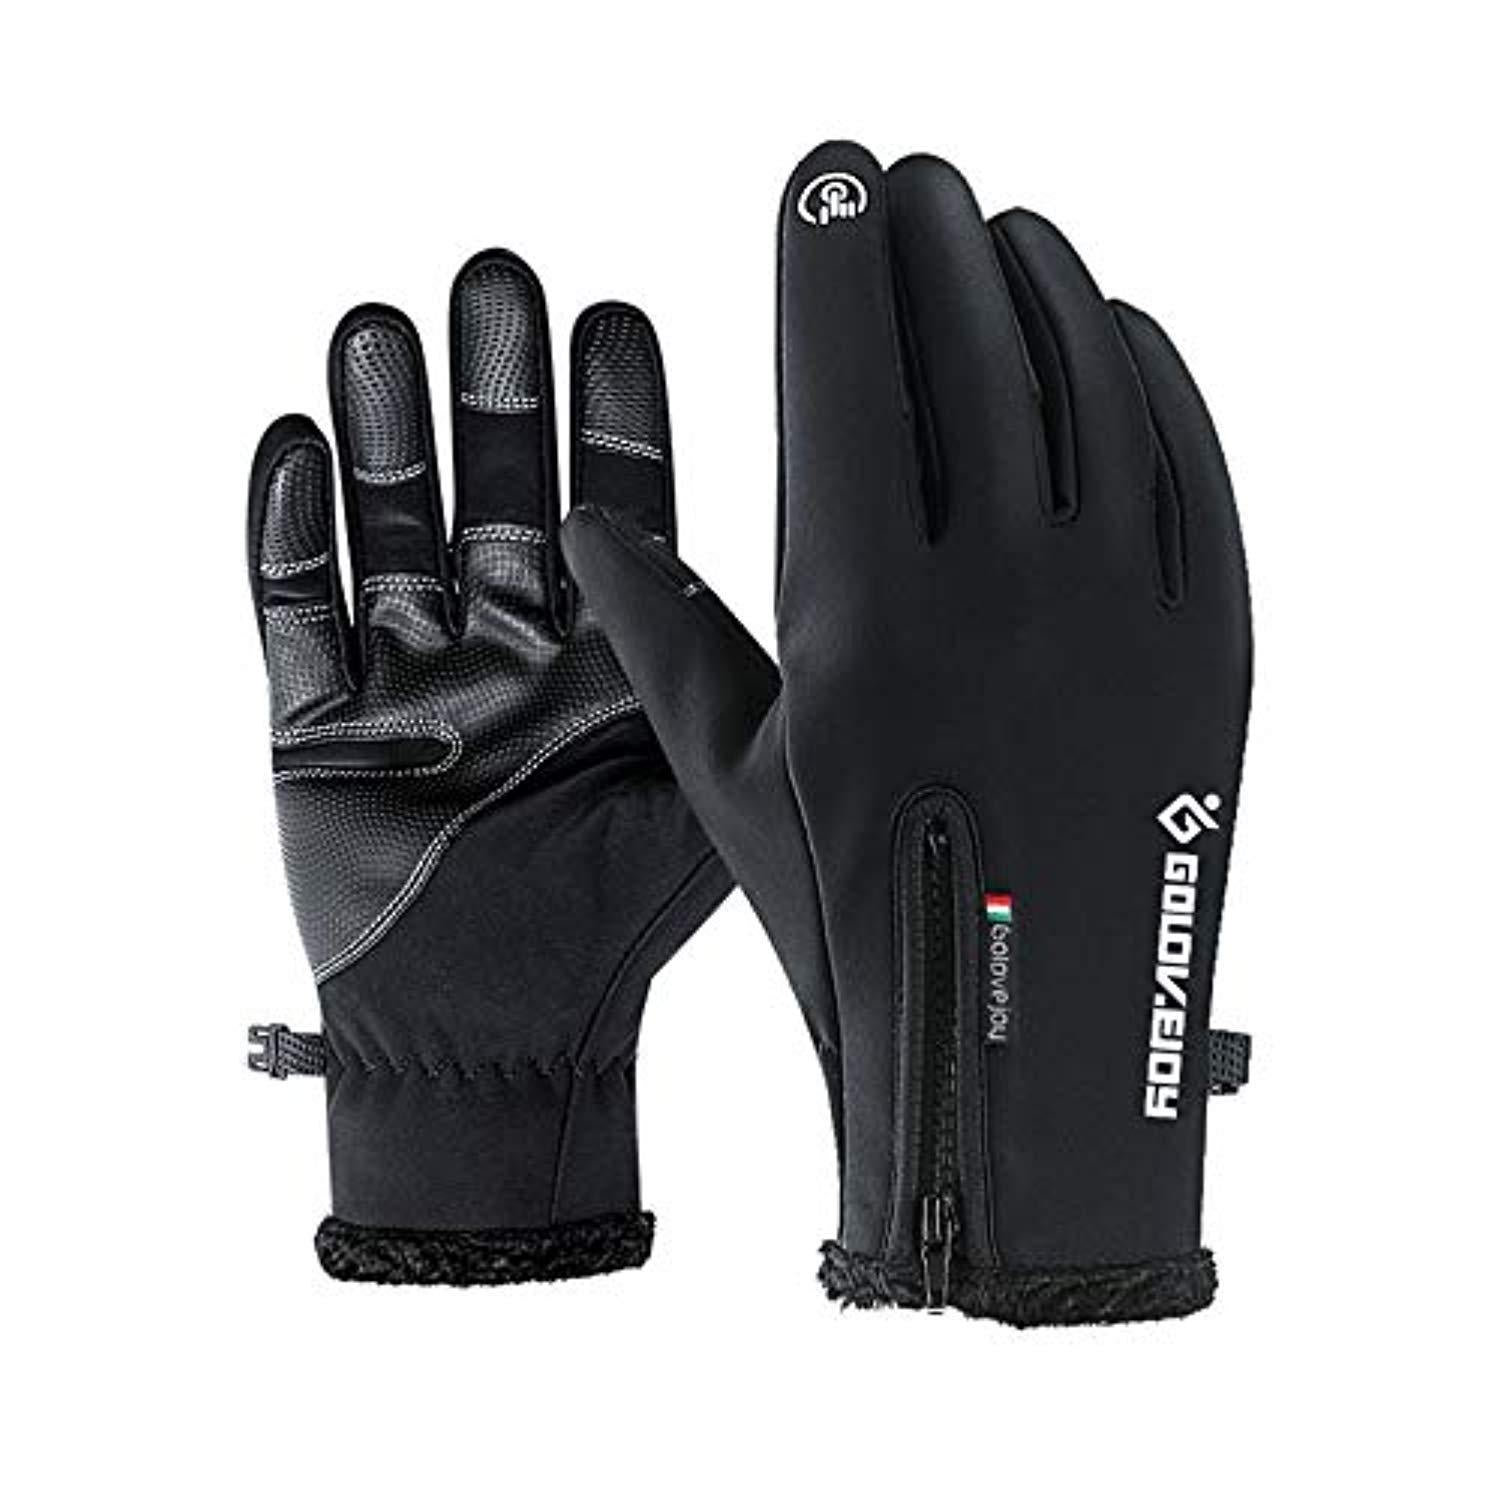 Men/'s Winter Warm Gloves Black Touch Screen Windproof Waterproof Outdoor Sport